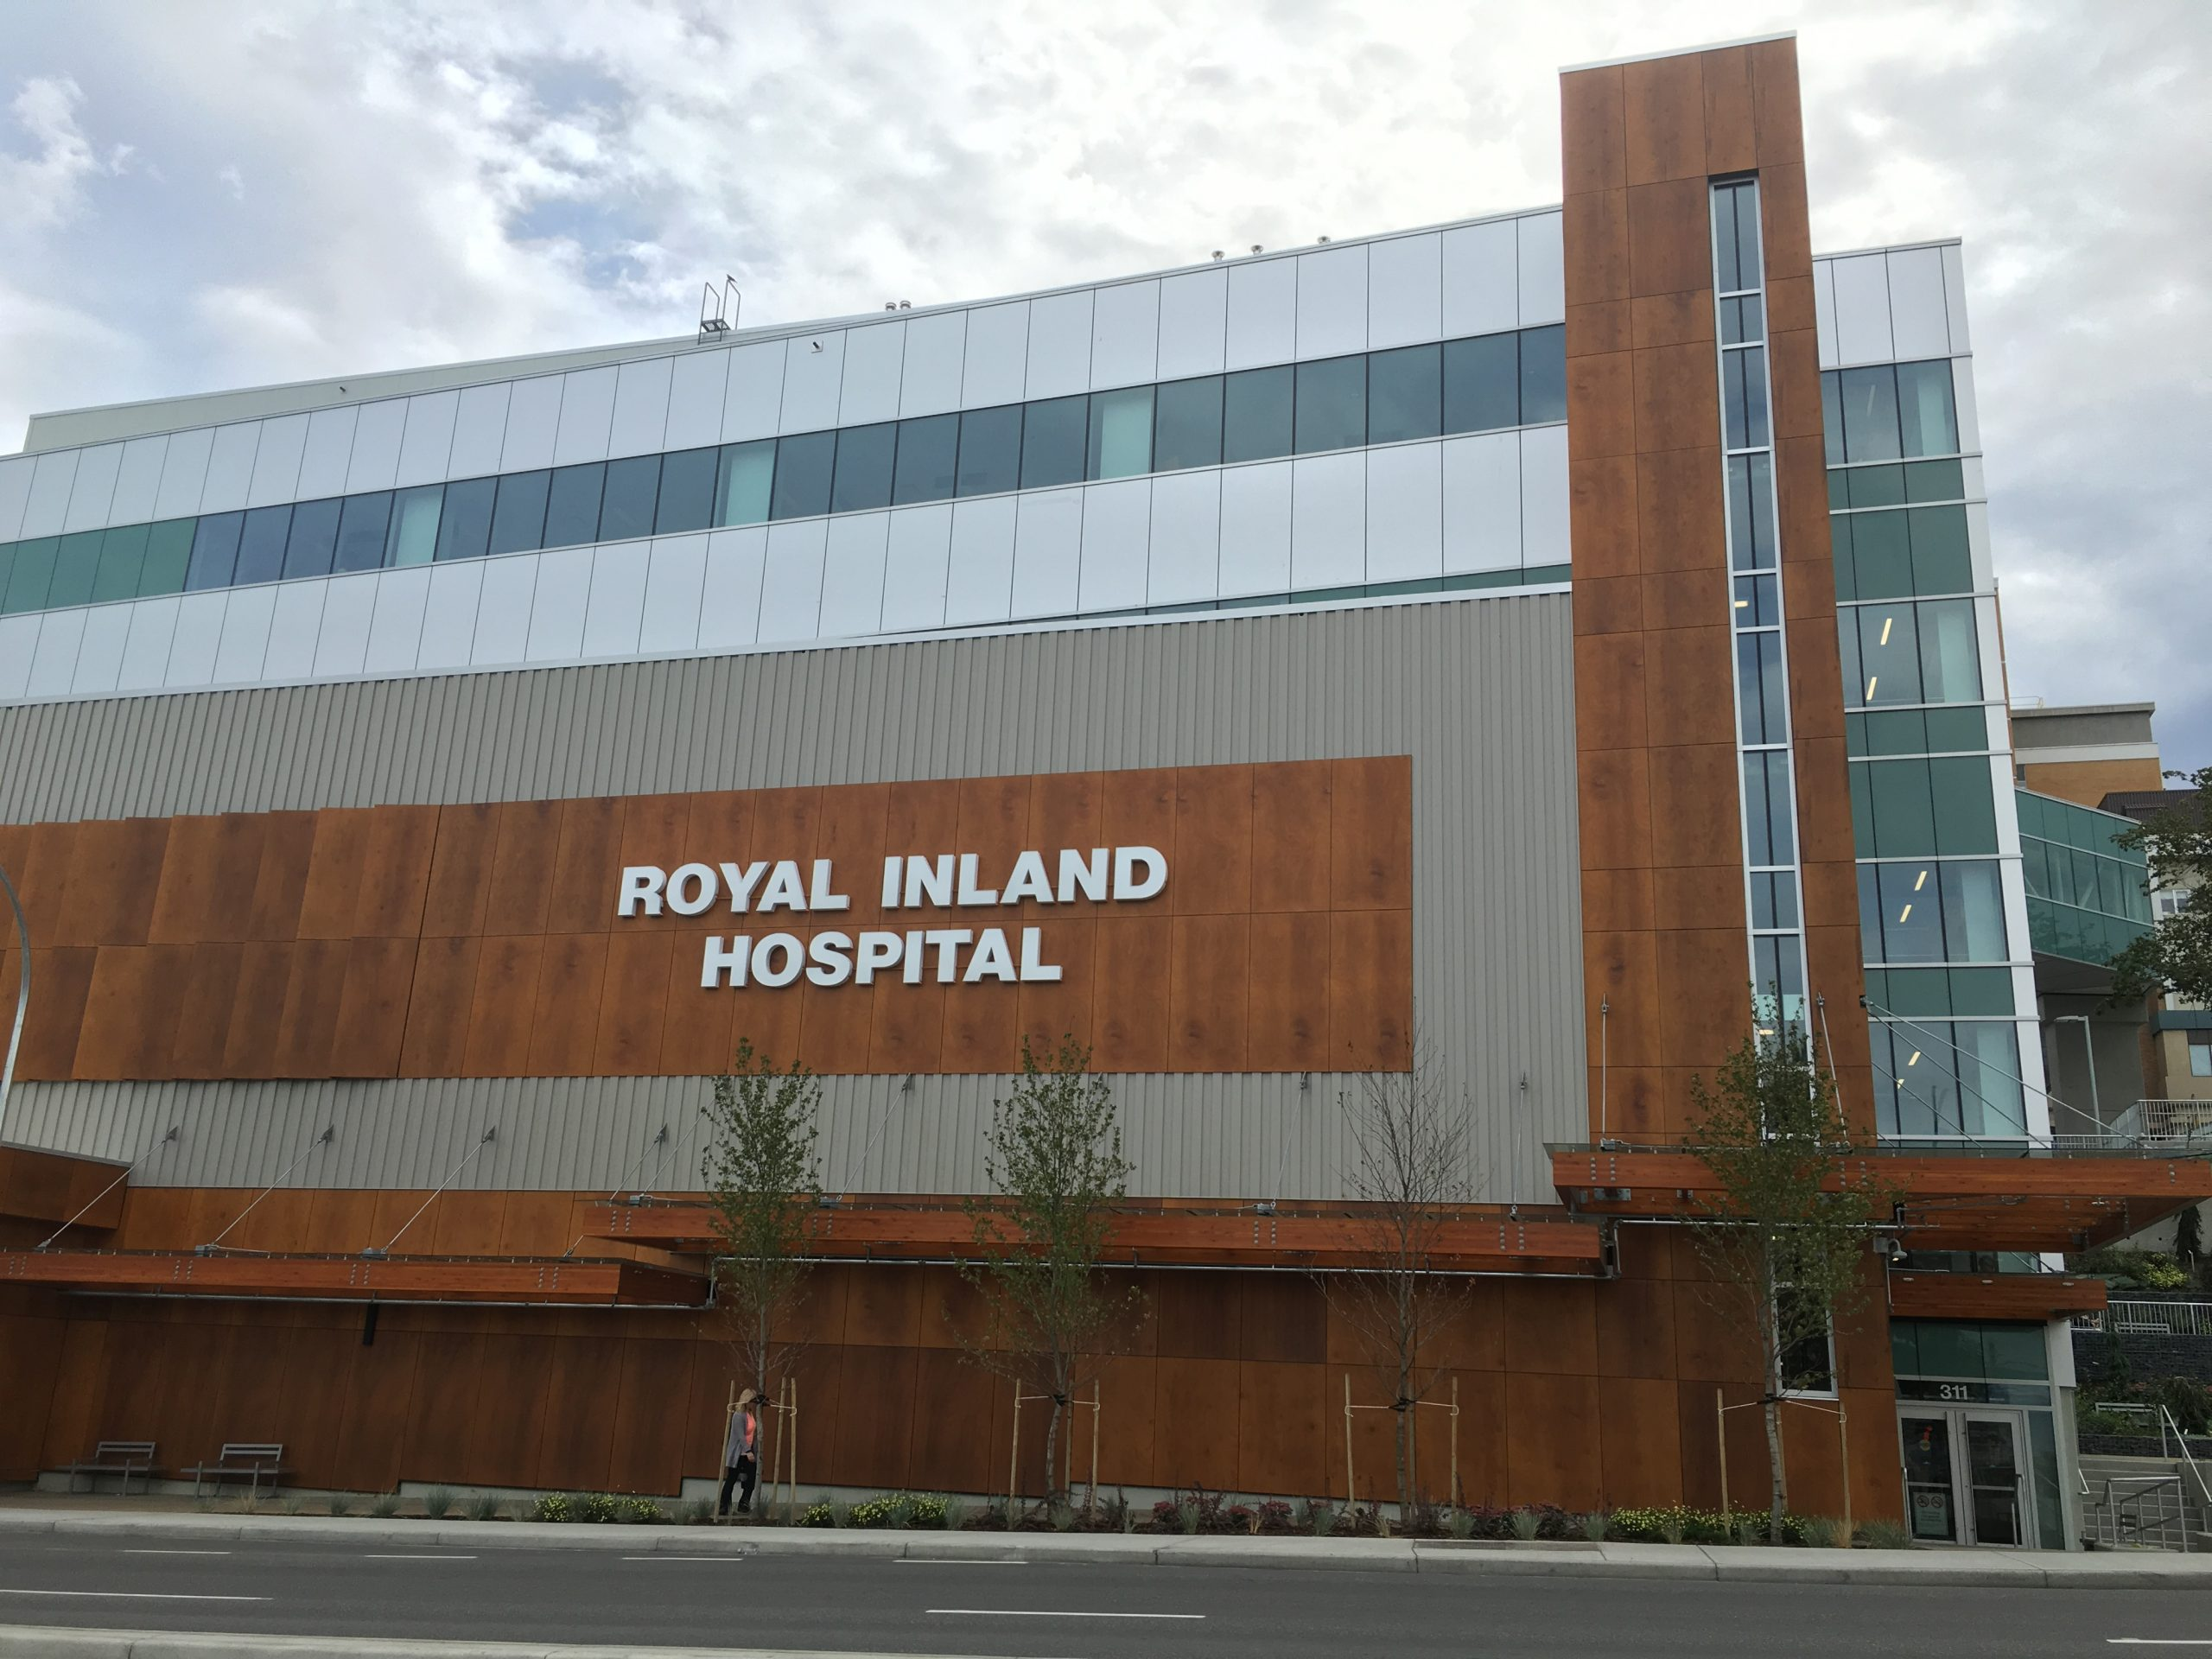 Some good news on the Royal Inland Hospital data breach front